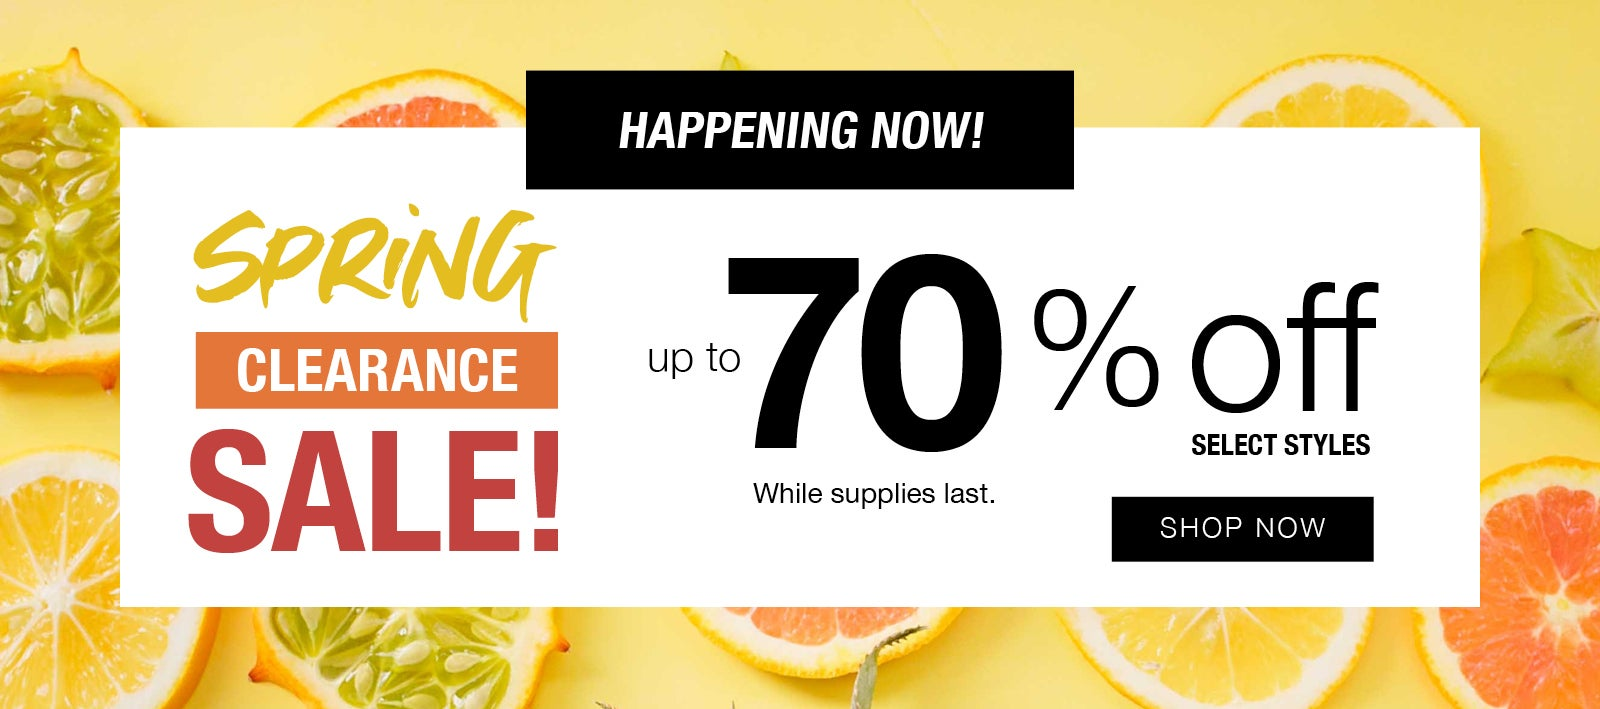 Spring Clearance Sale - Shop Now and Save!